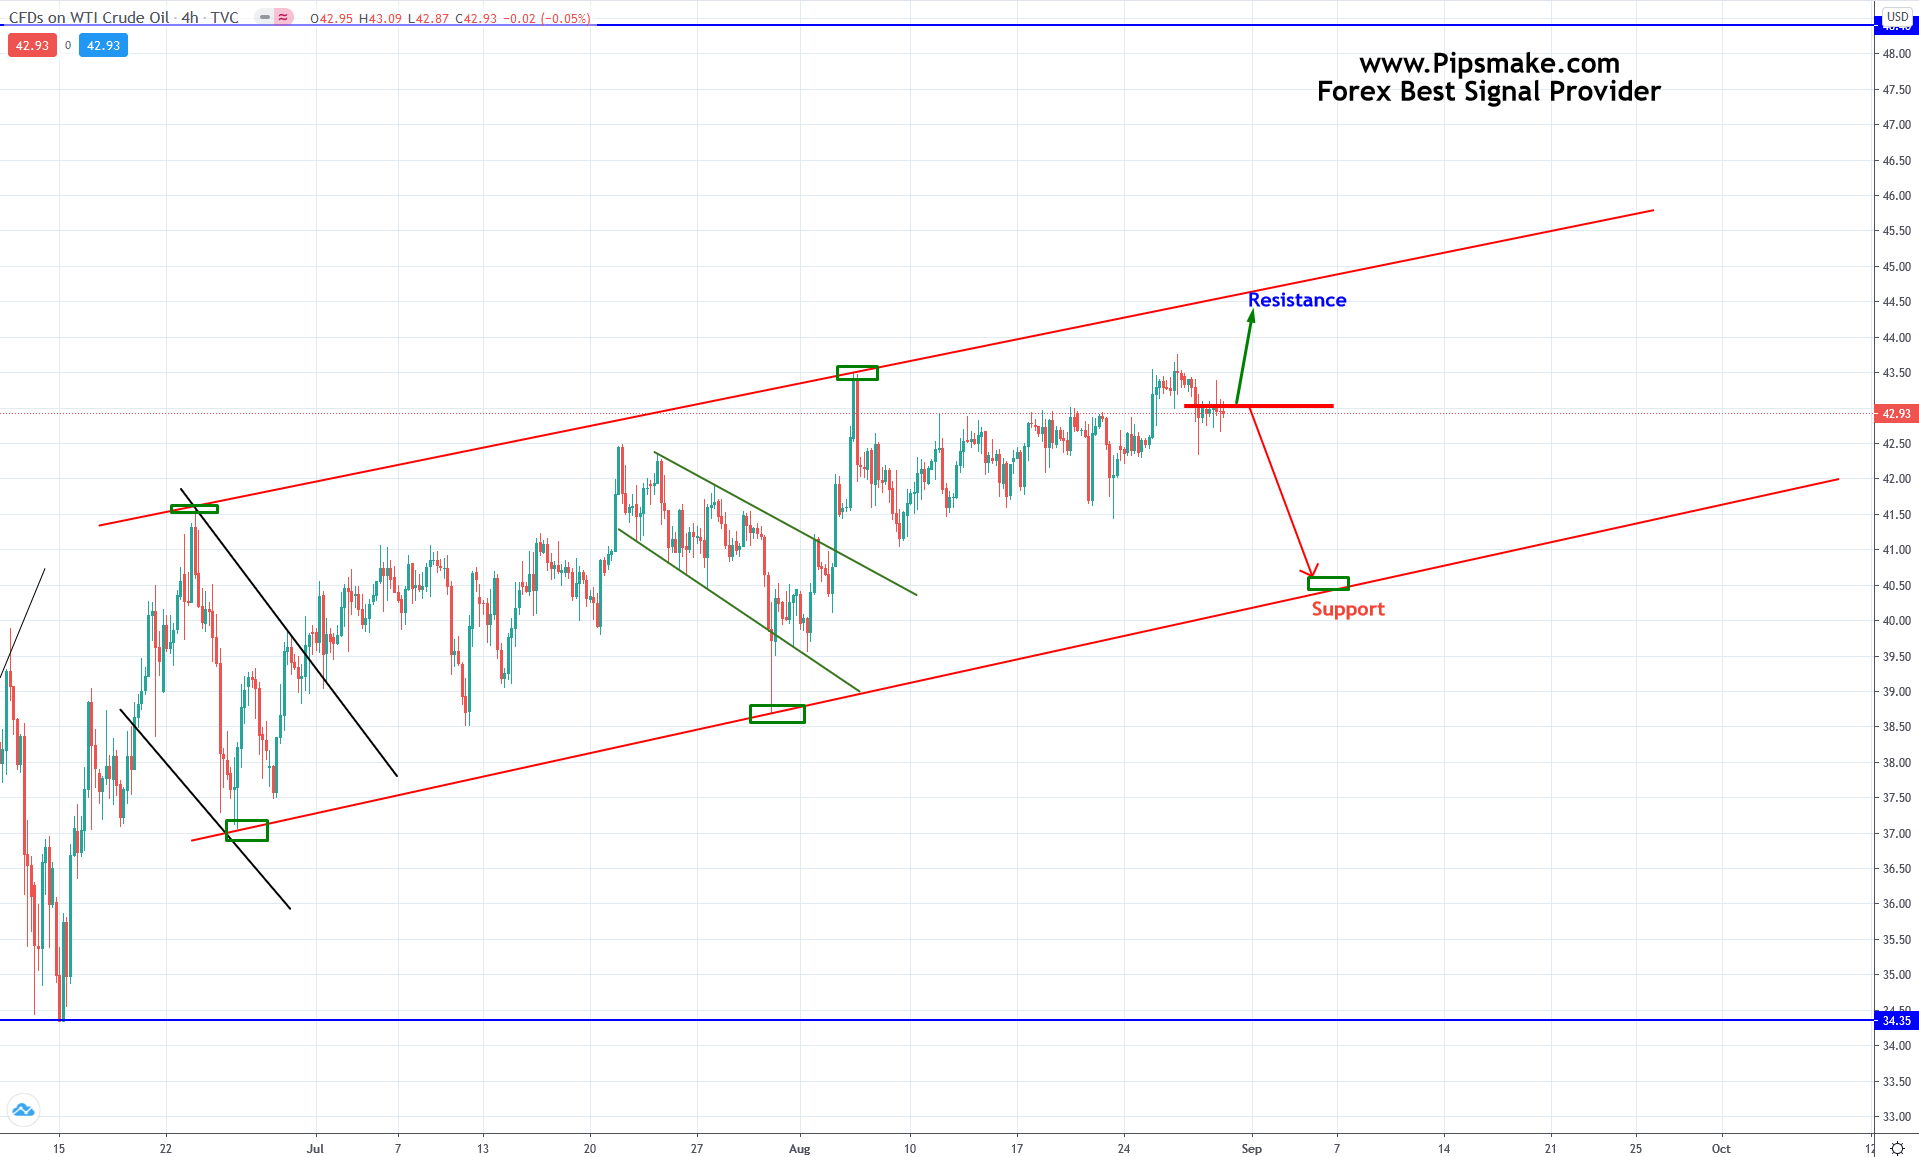 Pipsmake Forex Weekly Chart Analysis In 2020